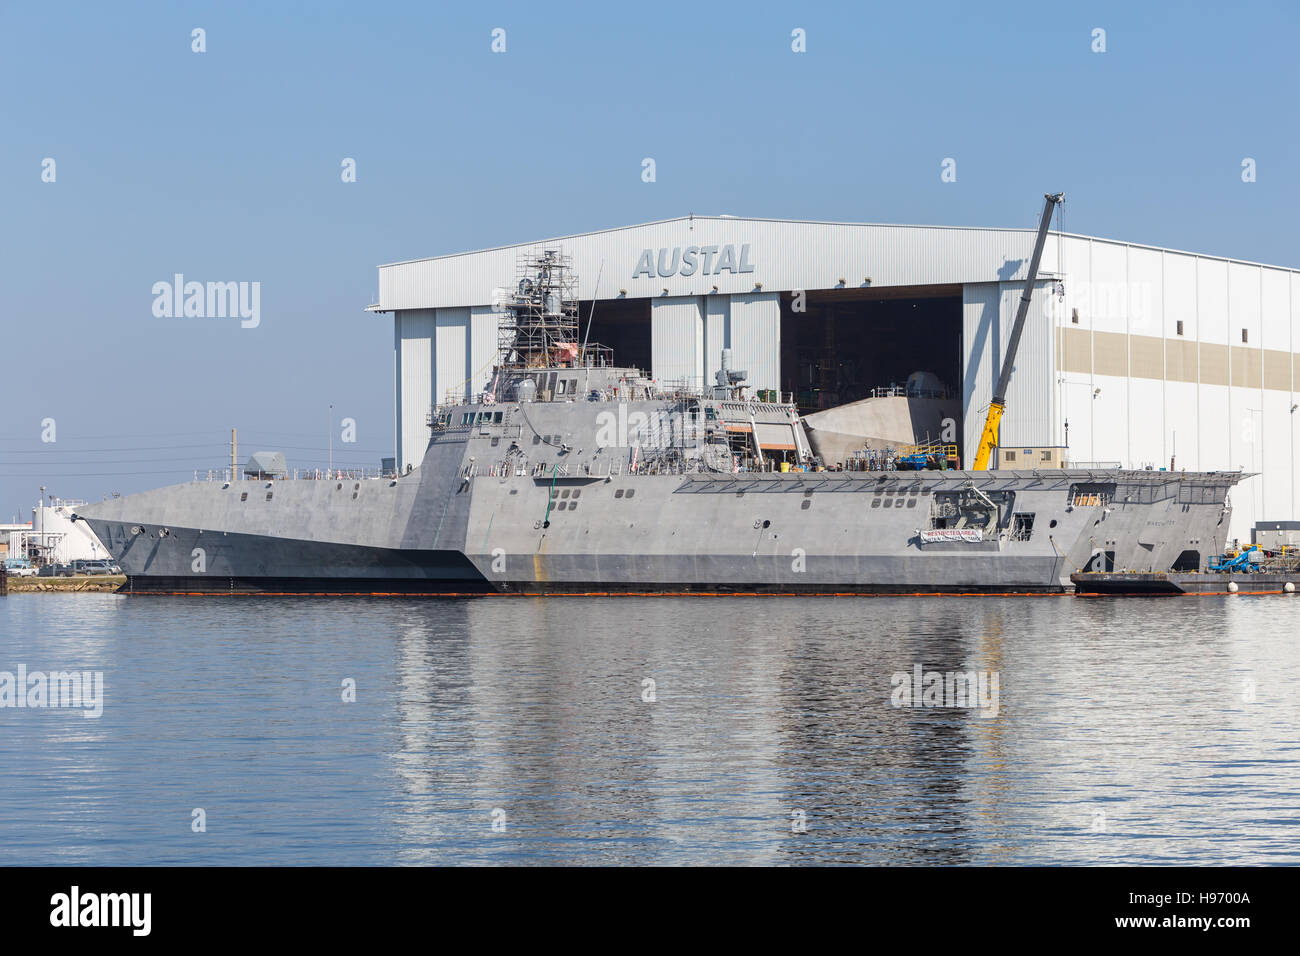 USS Manchester littoral combat ship (LCS) under construction at the Austal Shipyard on the Mobile River in Mobile, - Stock Image